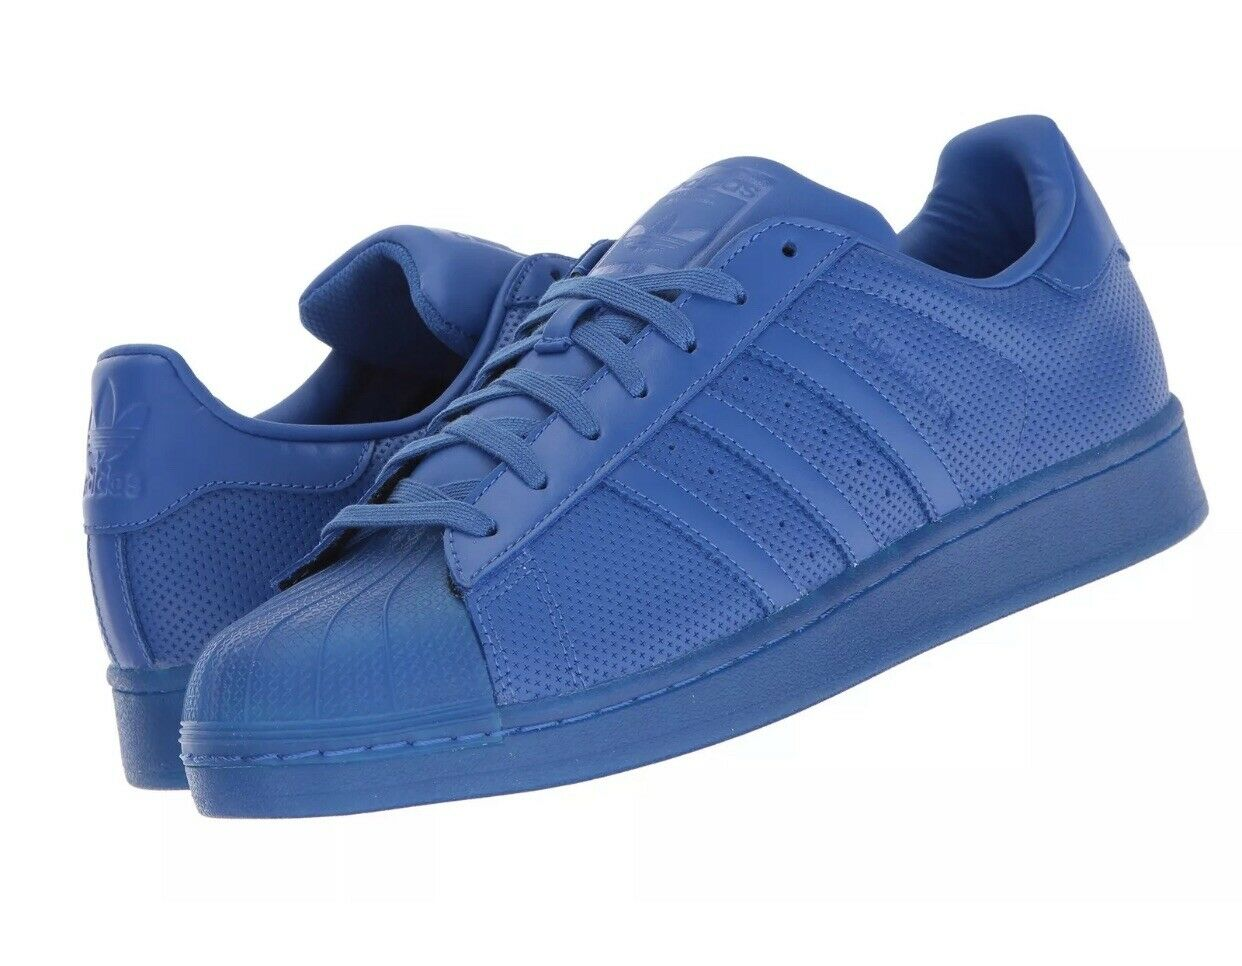 Adidas Originals Men's Superstar Adicolor bluee bluee bluee Size 12 US New In Box